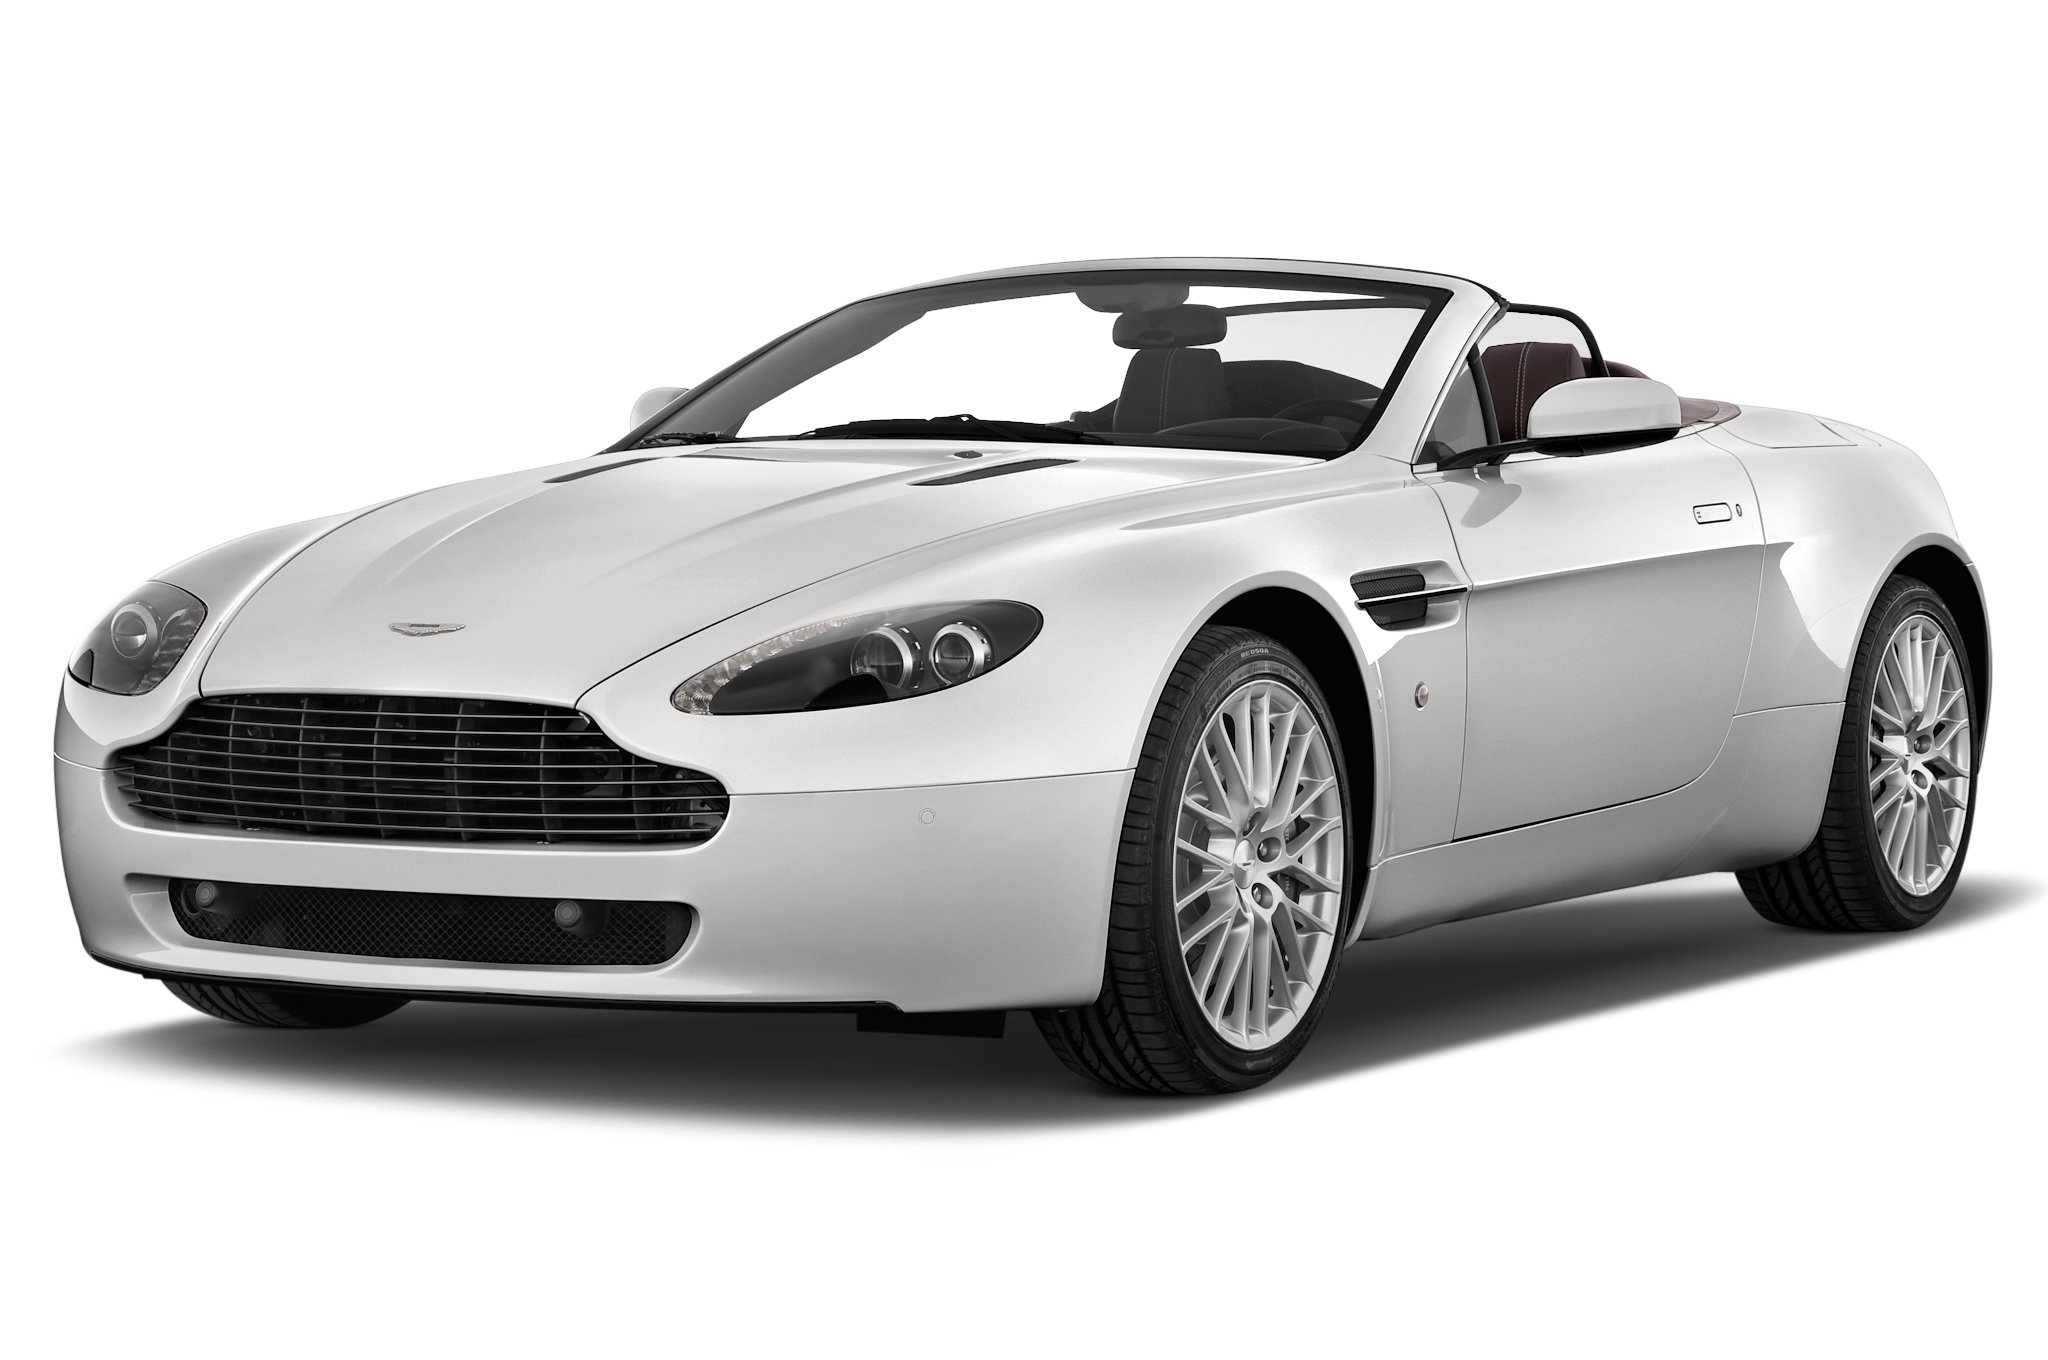 New Aston Martin V8 VANTAGE Cars - Prices & Overview